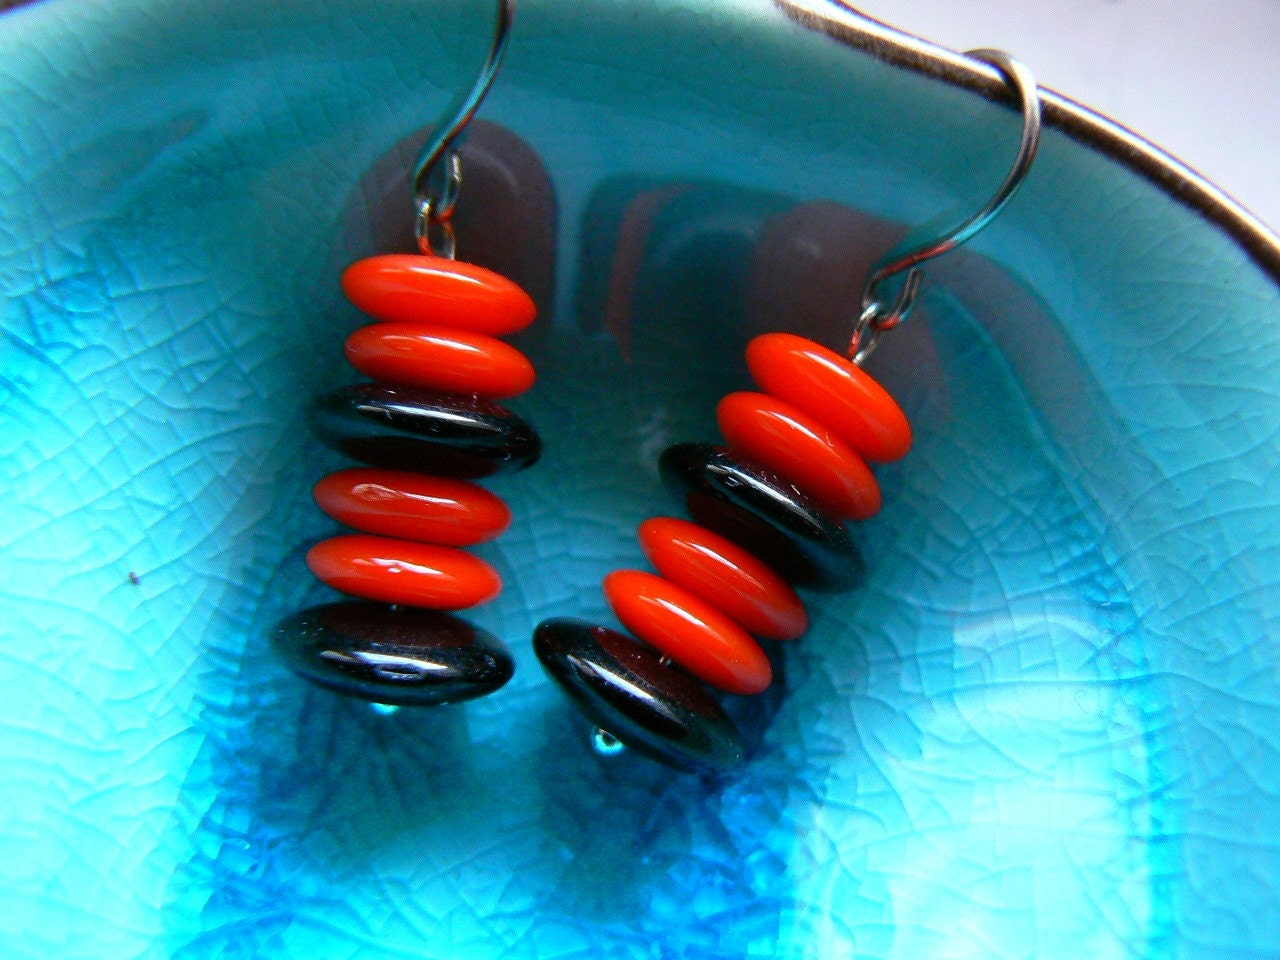 SALE - Carmen's temptation earrings